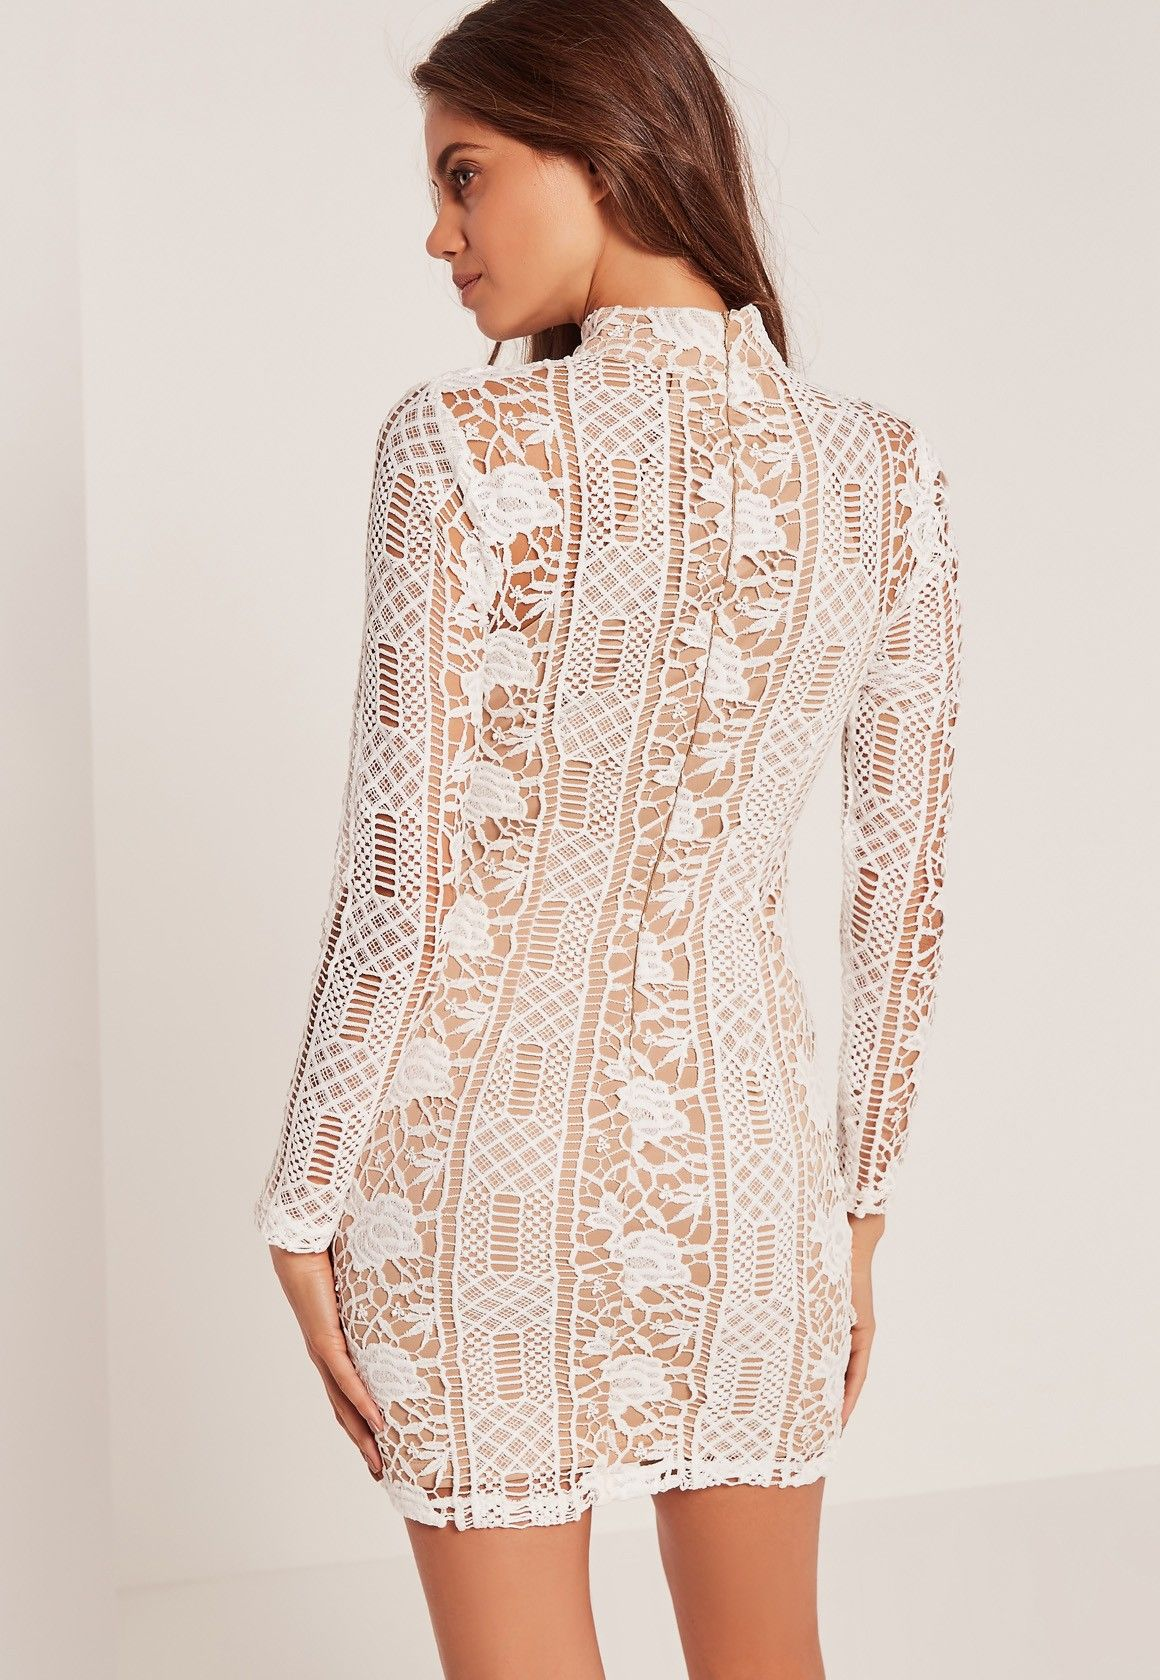 54e7ab1e9be3 Missguided - Lace Long Sleeve High Neck Bodycon Dress White ...